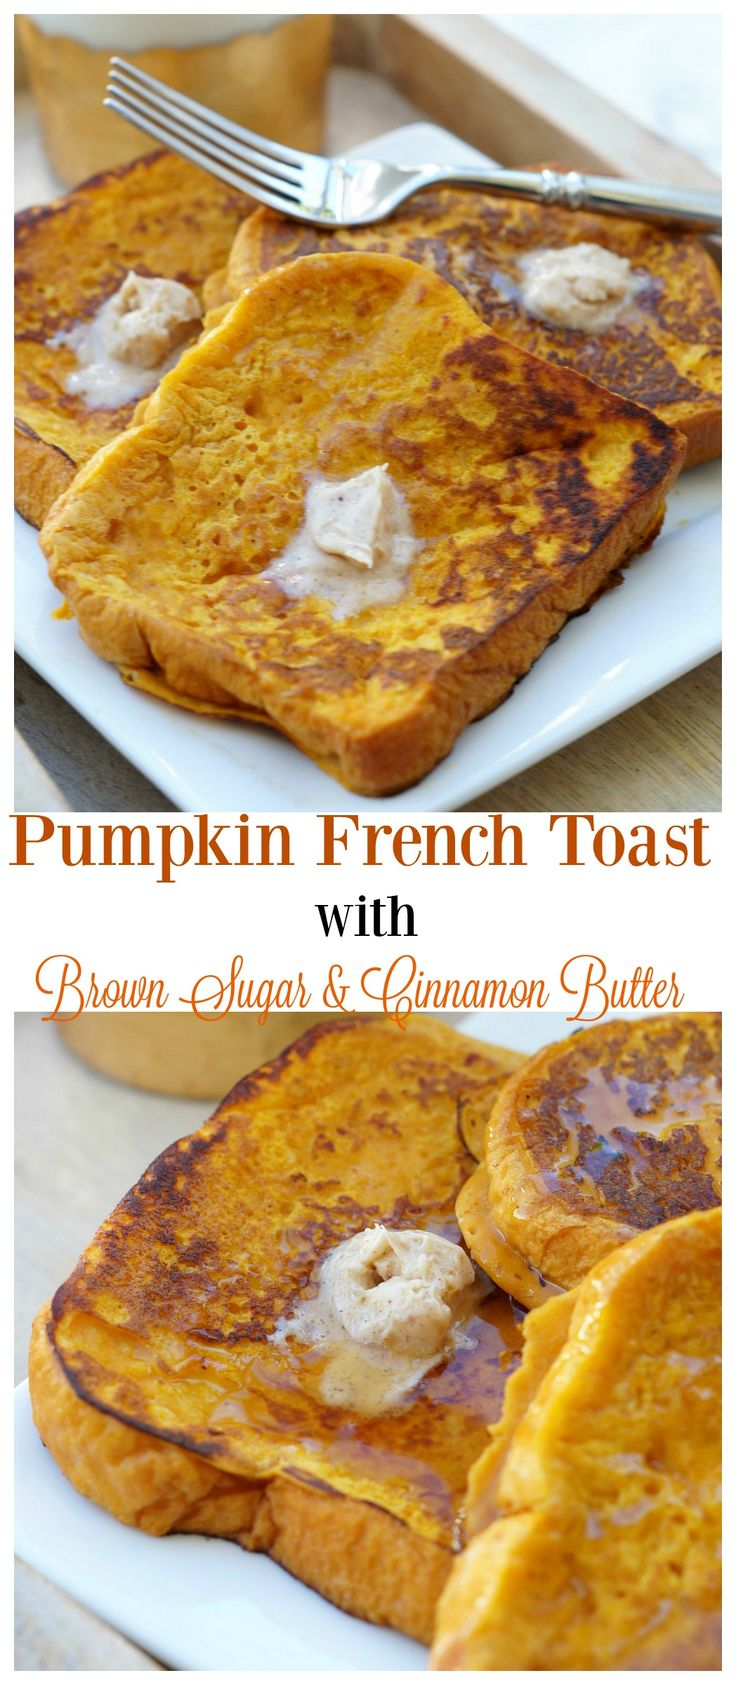 Pumpkin French Toast with Brown Sugar Cinnamon Butter, made with brioche bread, is the absolute best french toast you will ever taste!